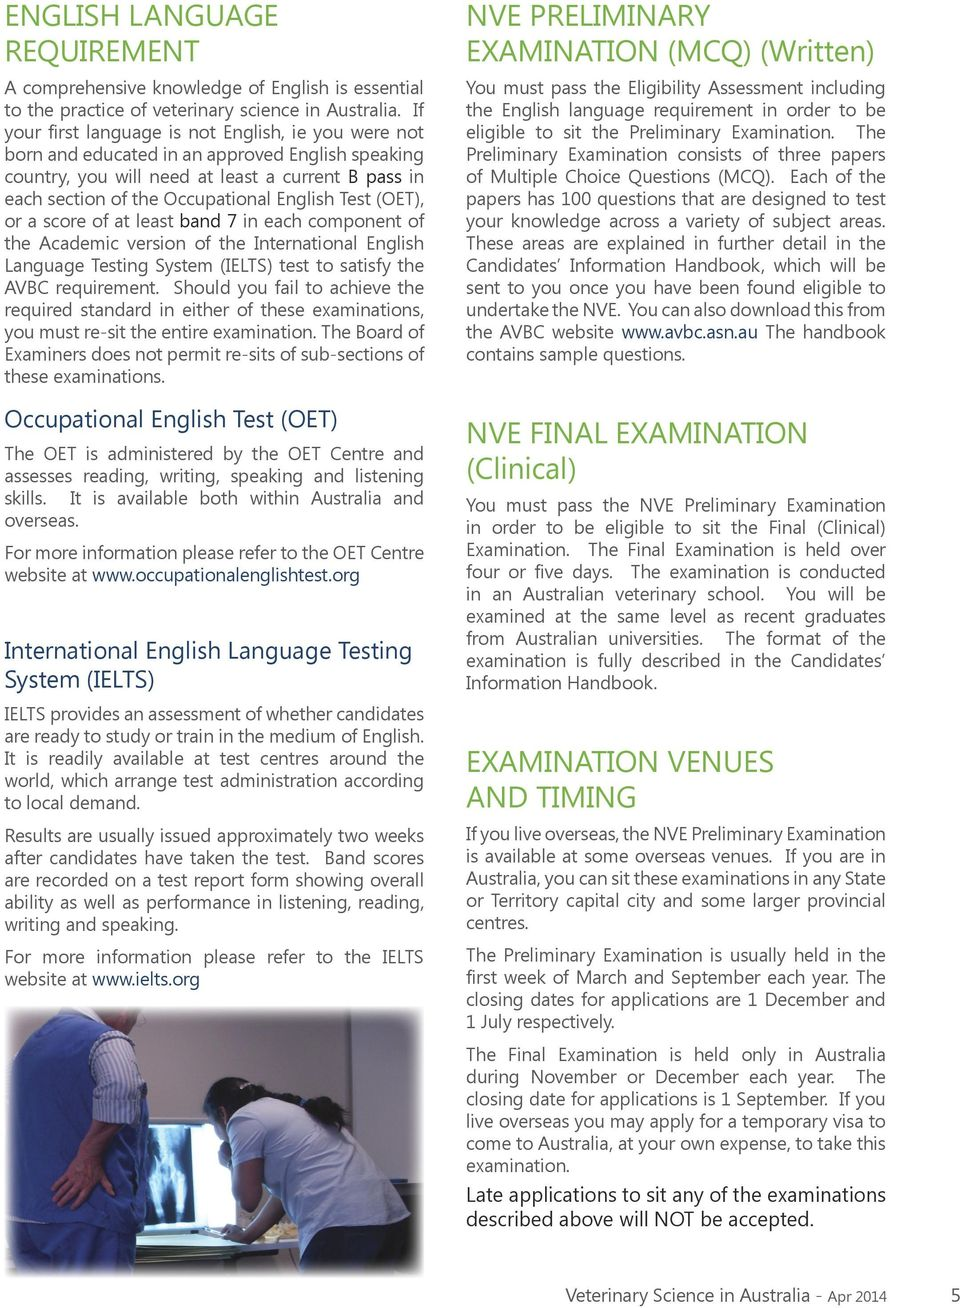 Test (OET), or a score of at least band 7 in each component of the Academic version of the International English Language Testing System (IELTS) test to satisfy the AVBC requirement.